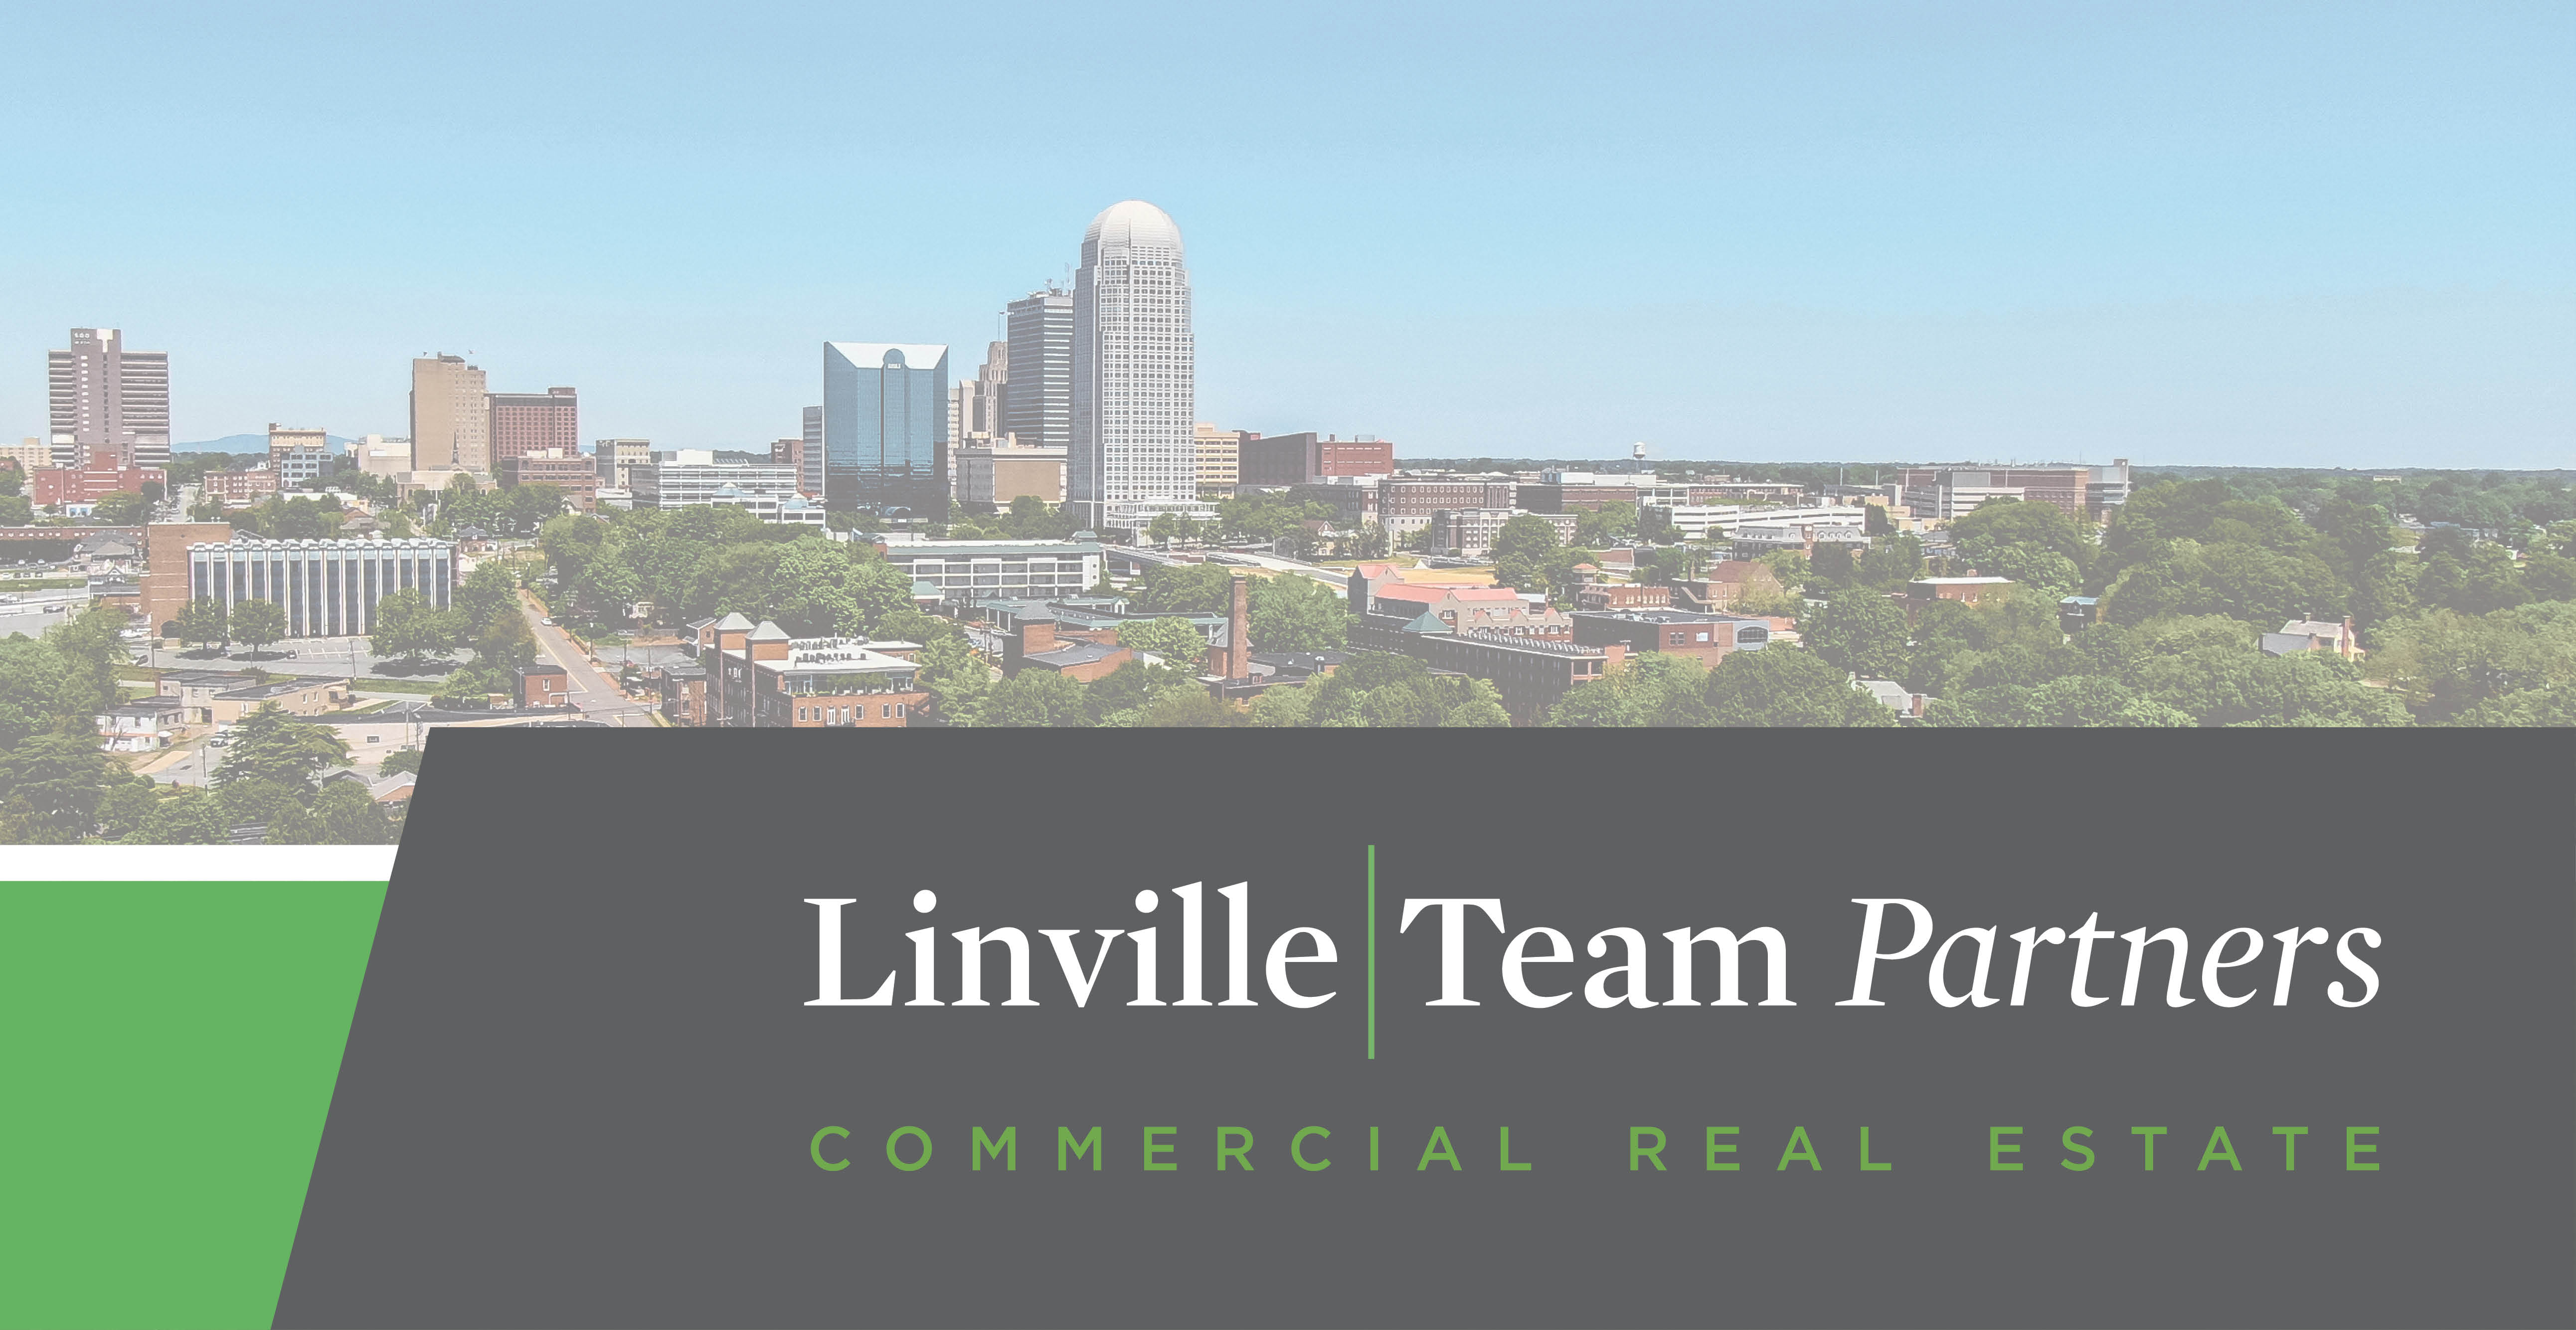 Linville Team Partners